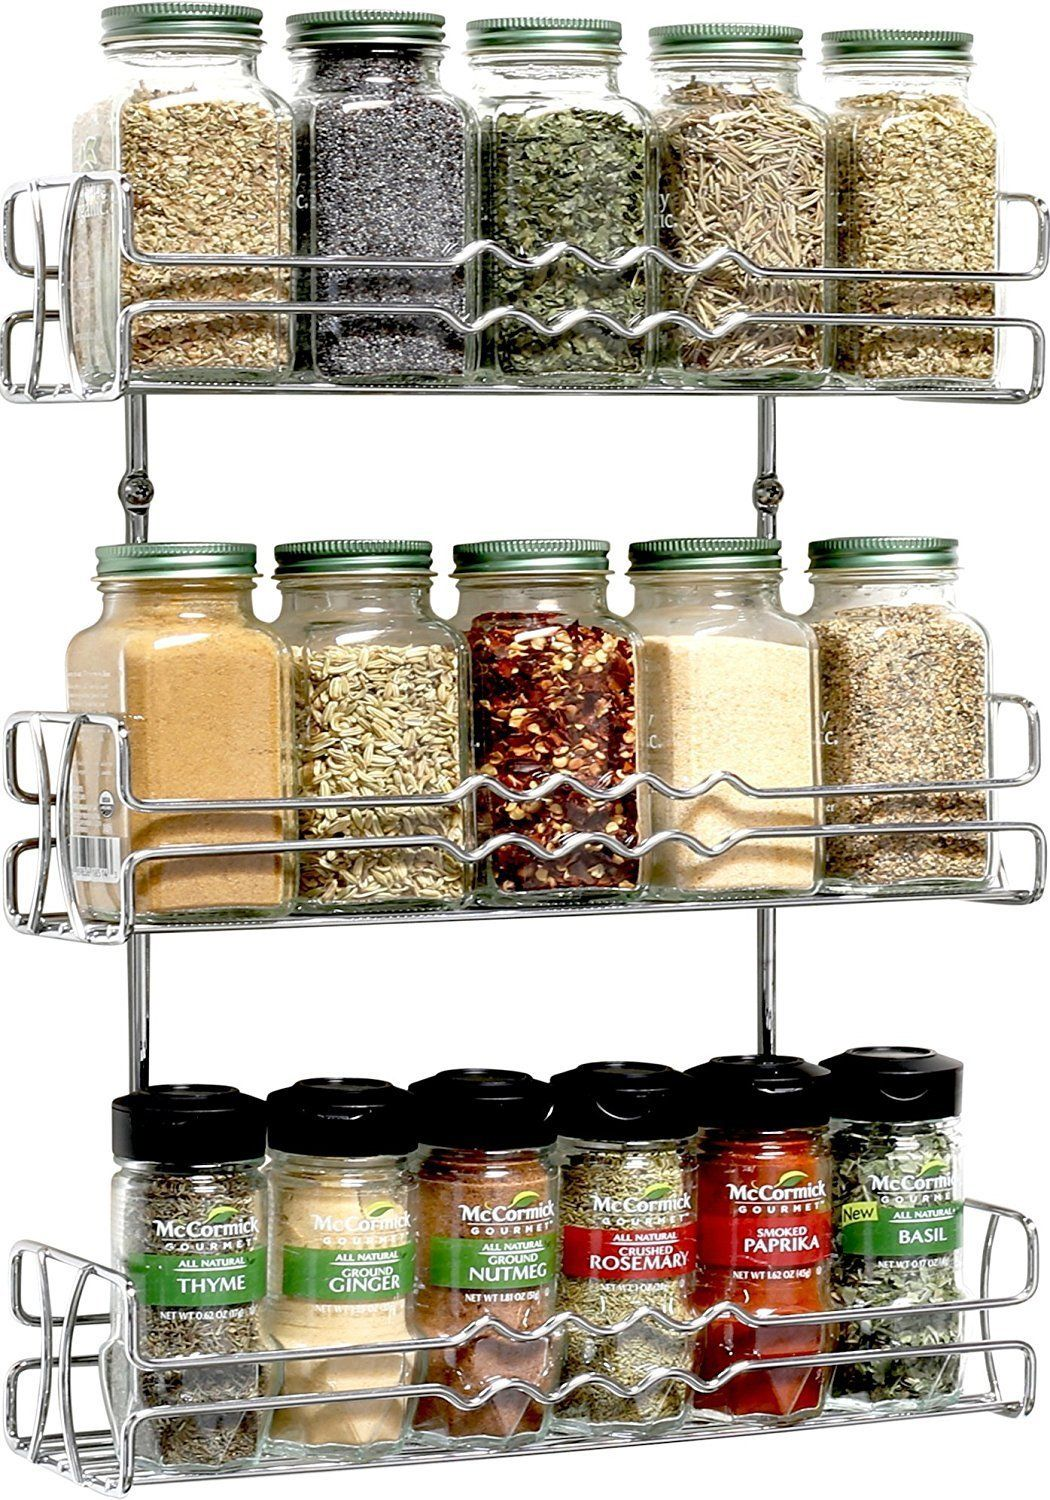 Buy Callas 3 Tier Wall Mounted Spice Rack Kitchen Organiser Chrome Ca 67 Online At Low Prices Wall Mounted Spice Rack Spice Rack Wall Mounted Storage Shelves